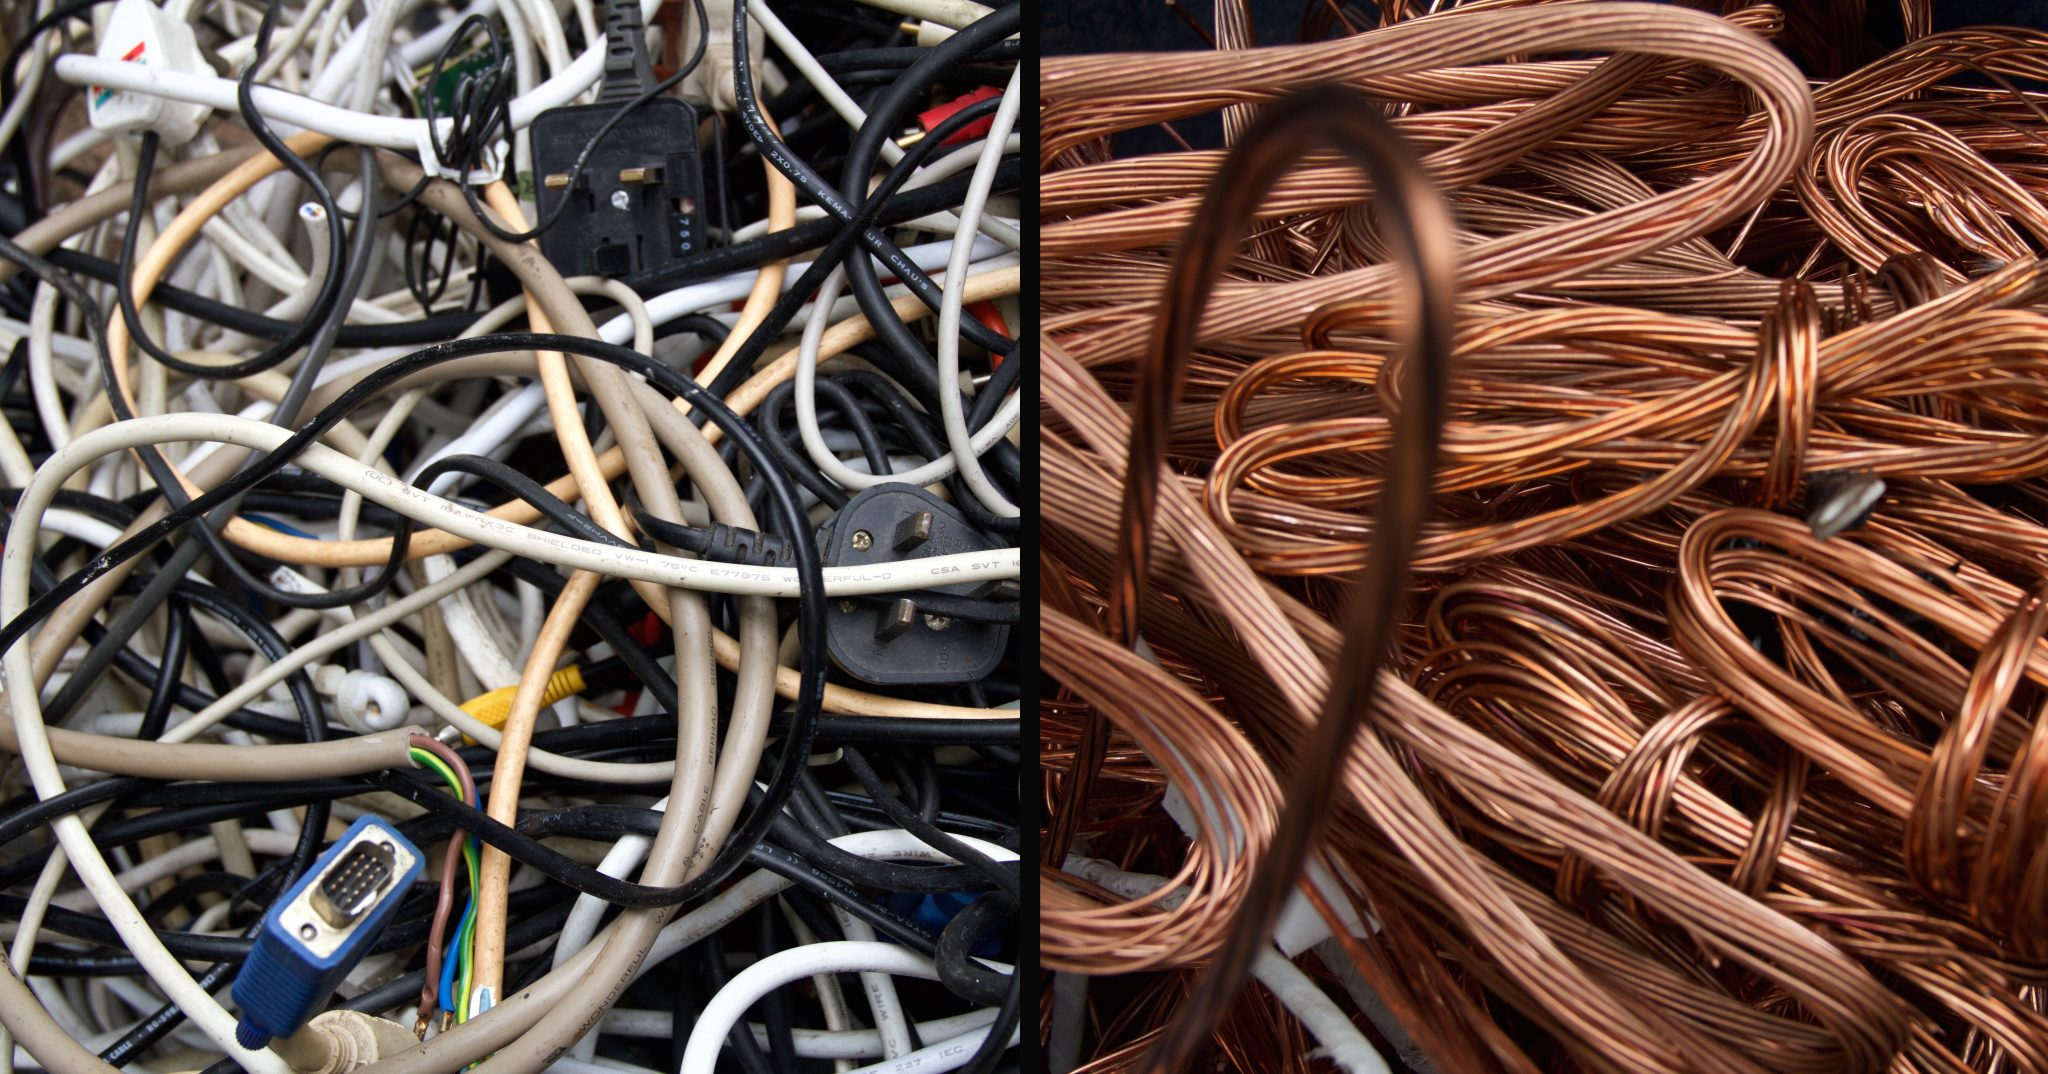 diptych of wires in Sham Shui Po, Hong Kong. Wires are stripped of their insulation to get to the metals that are then sold on for money. FAD Magazine